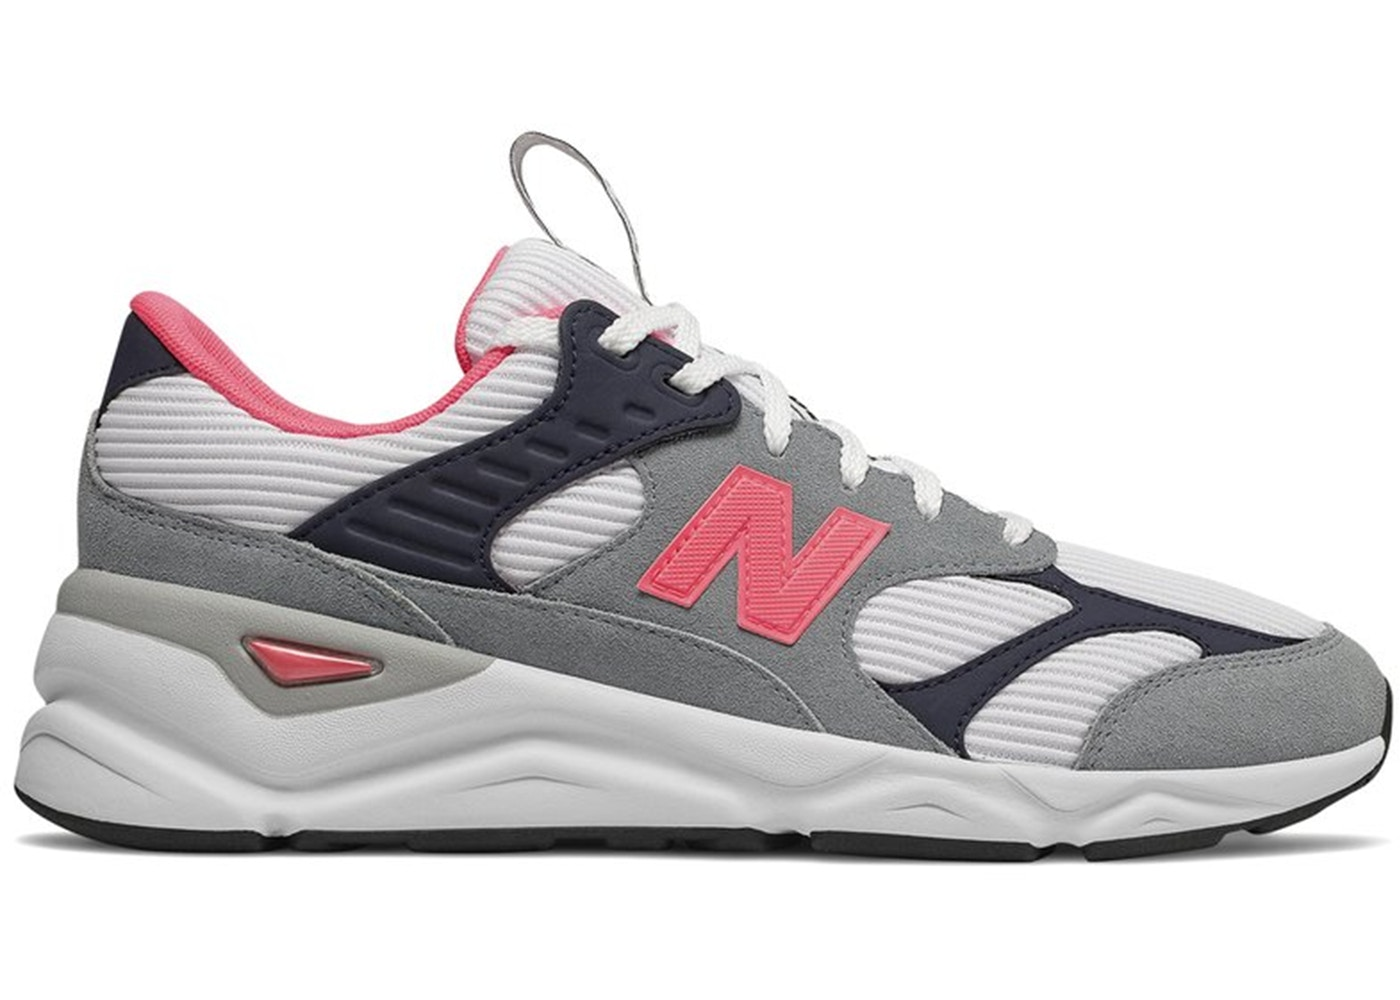 New Balance X-90 Reconstructed Reflection Guava